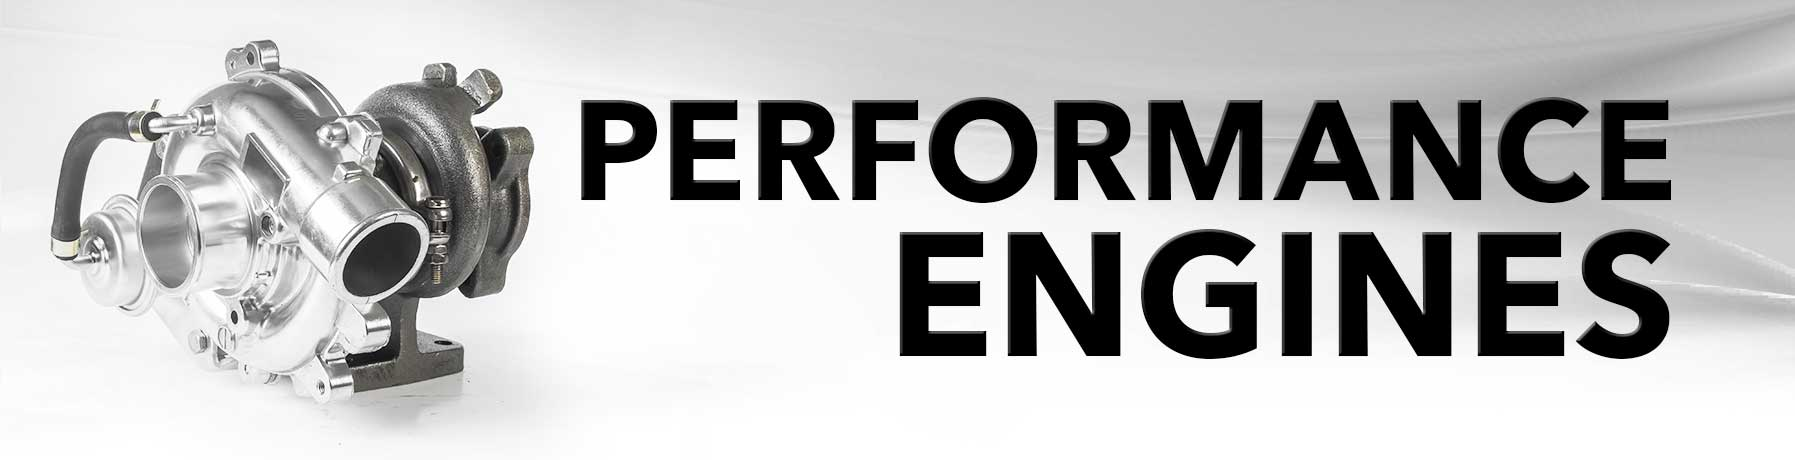 Performance Engine Services Banner